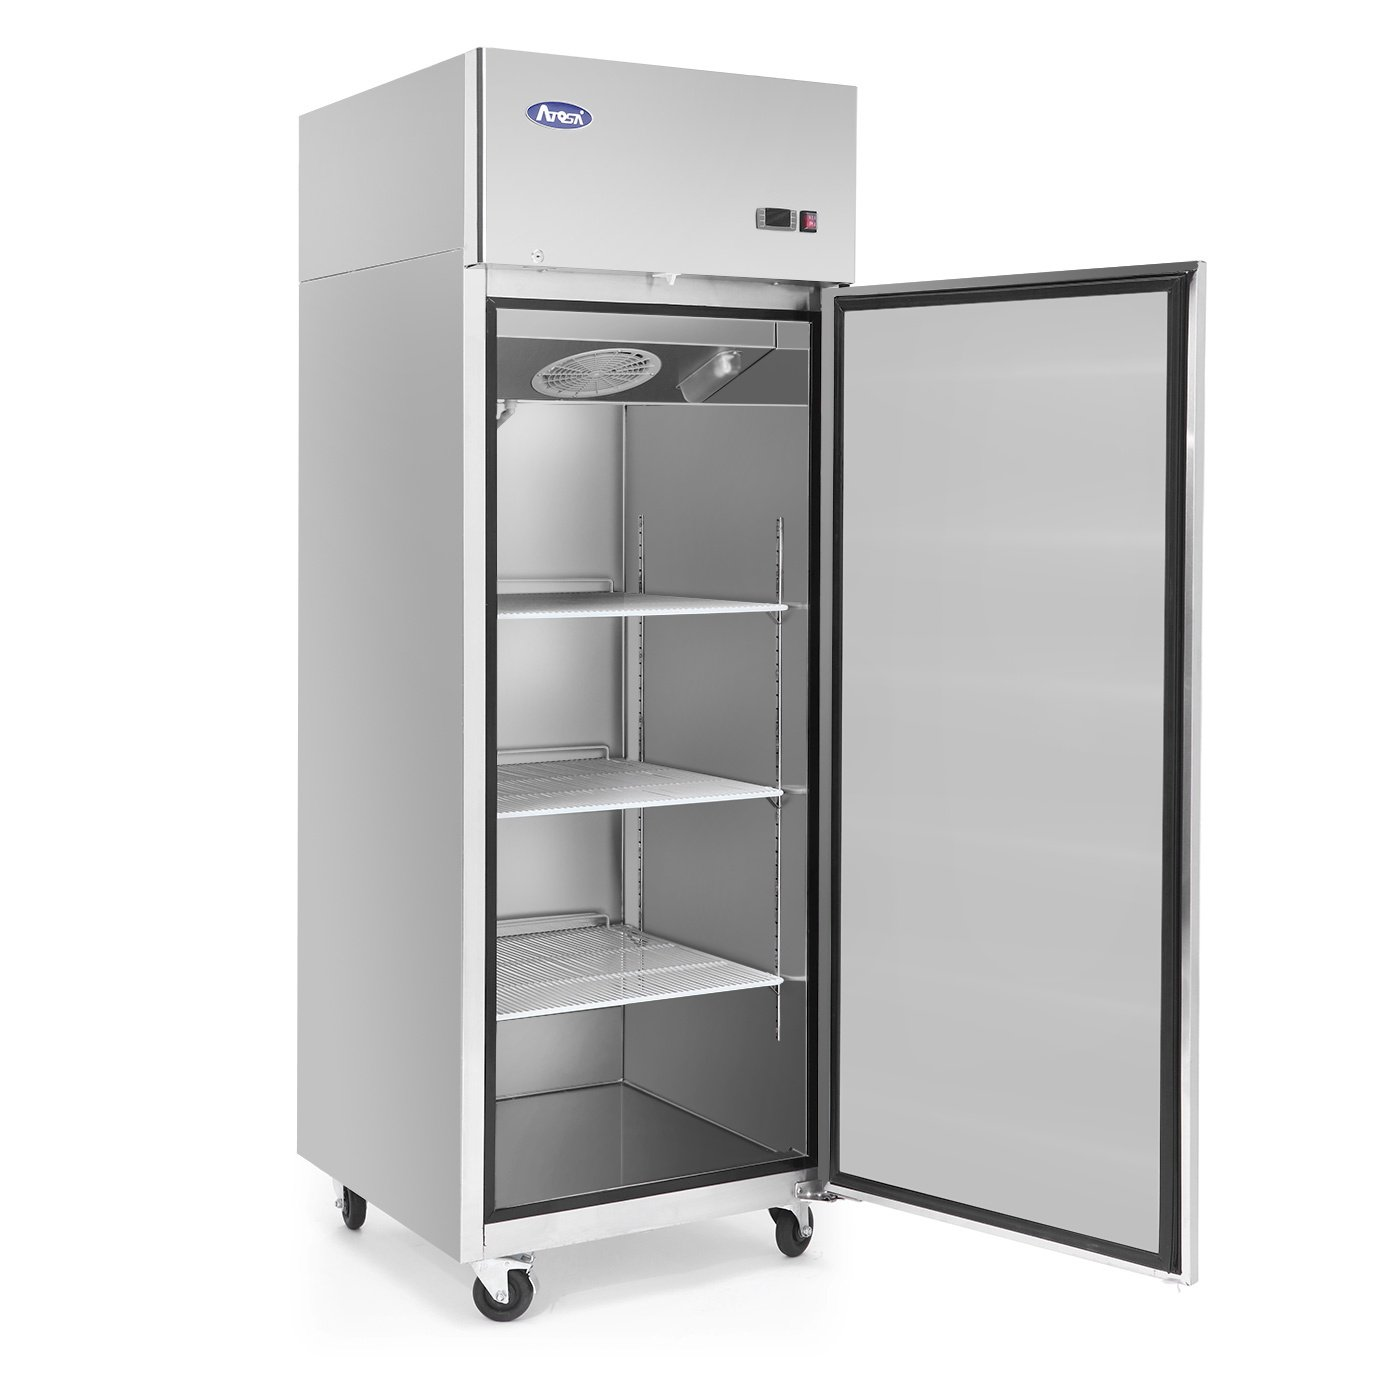 Upright Refrigerator Single Door Commercial Refrigerator 33℉-38℉ KITMA Bottom Mount Stainless Steel Fridge 19 Cu.Ft Restaurant Refrigeration Equipment